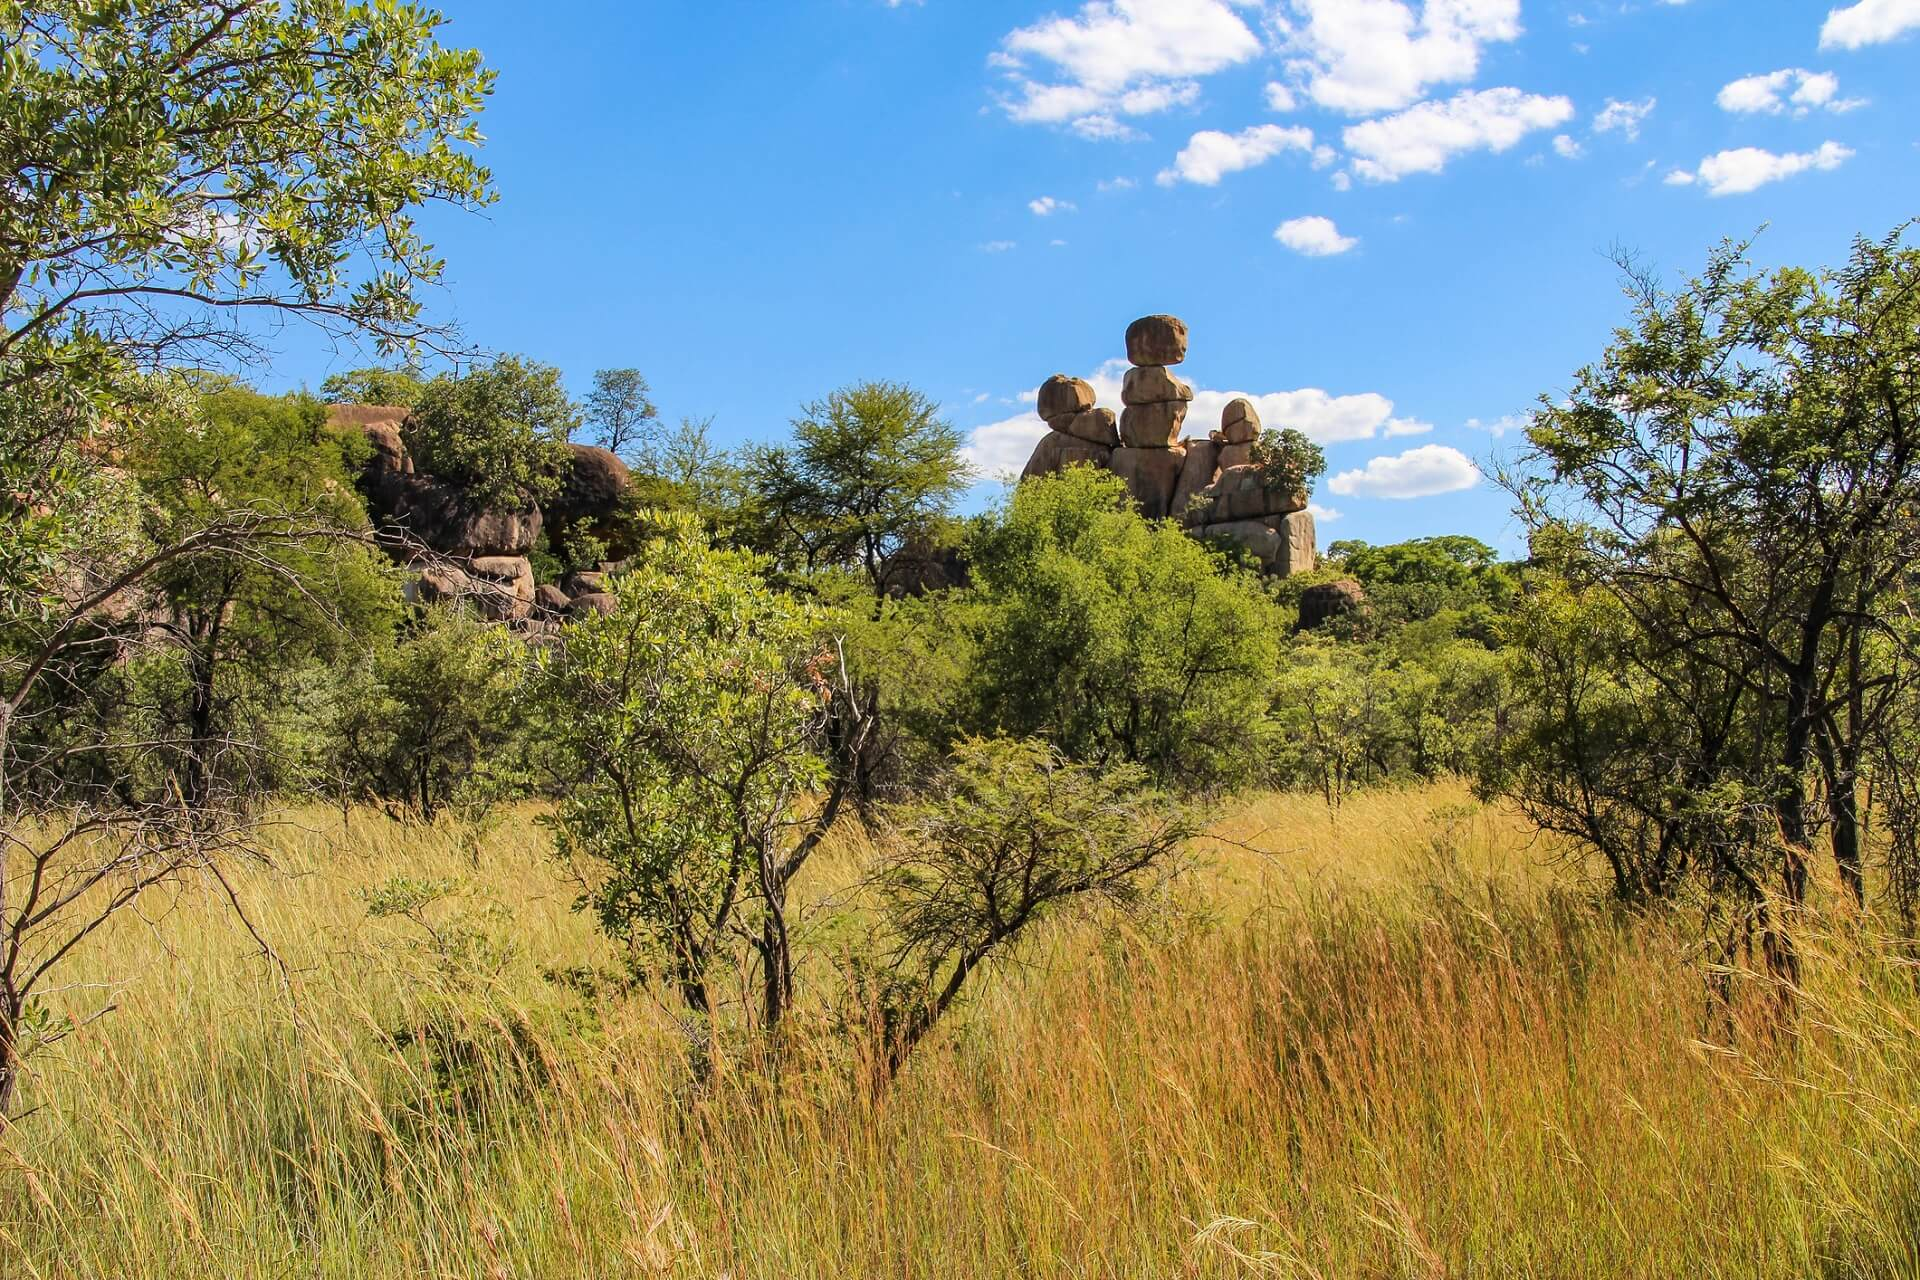 Steppe und Felsformationen im Matobo Nationalpark in Simbabwe.